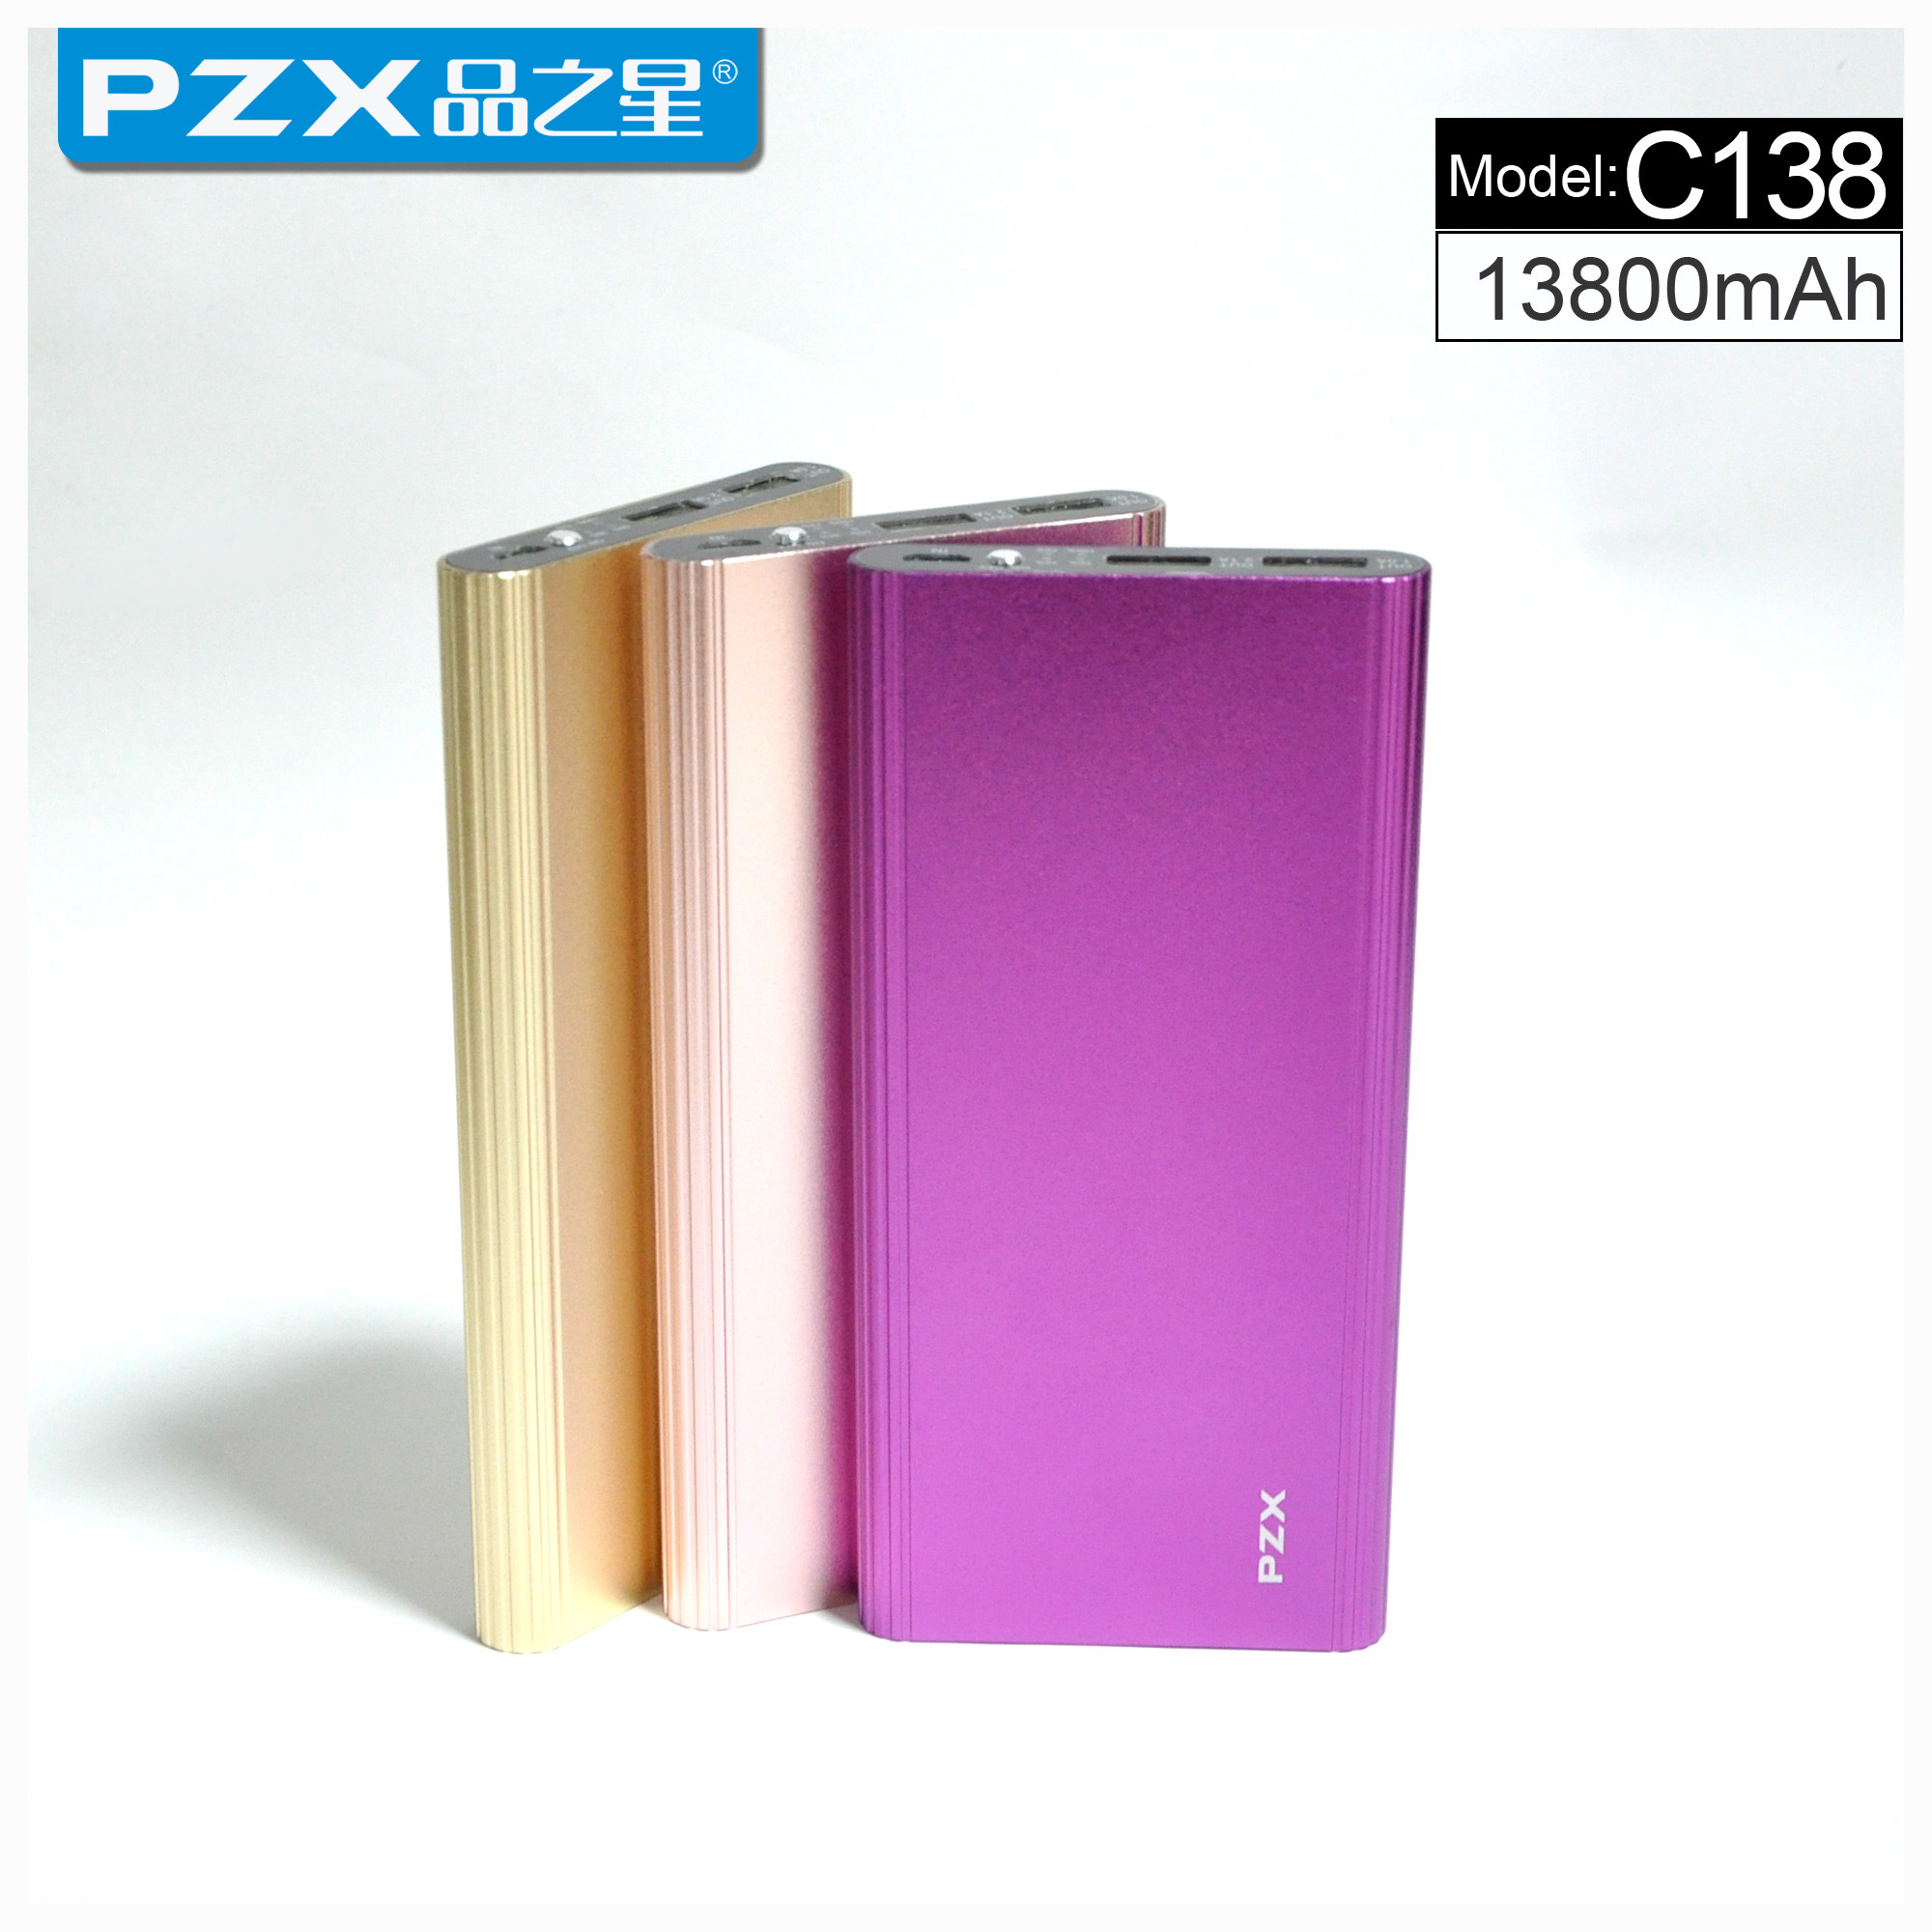 Pzx-C138! Two Output, LED Light, LCD Display Polymer Slim Power Bank 13800mAh